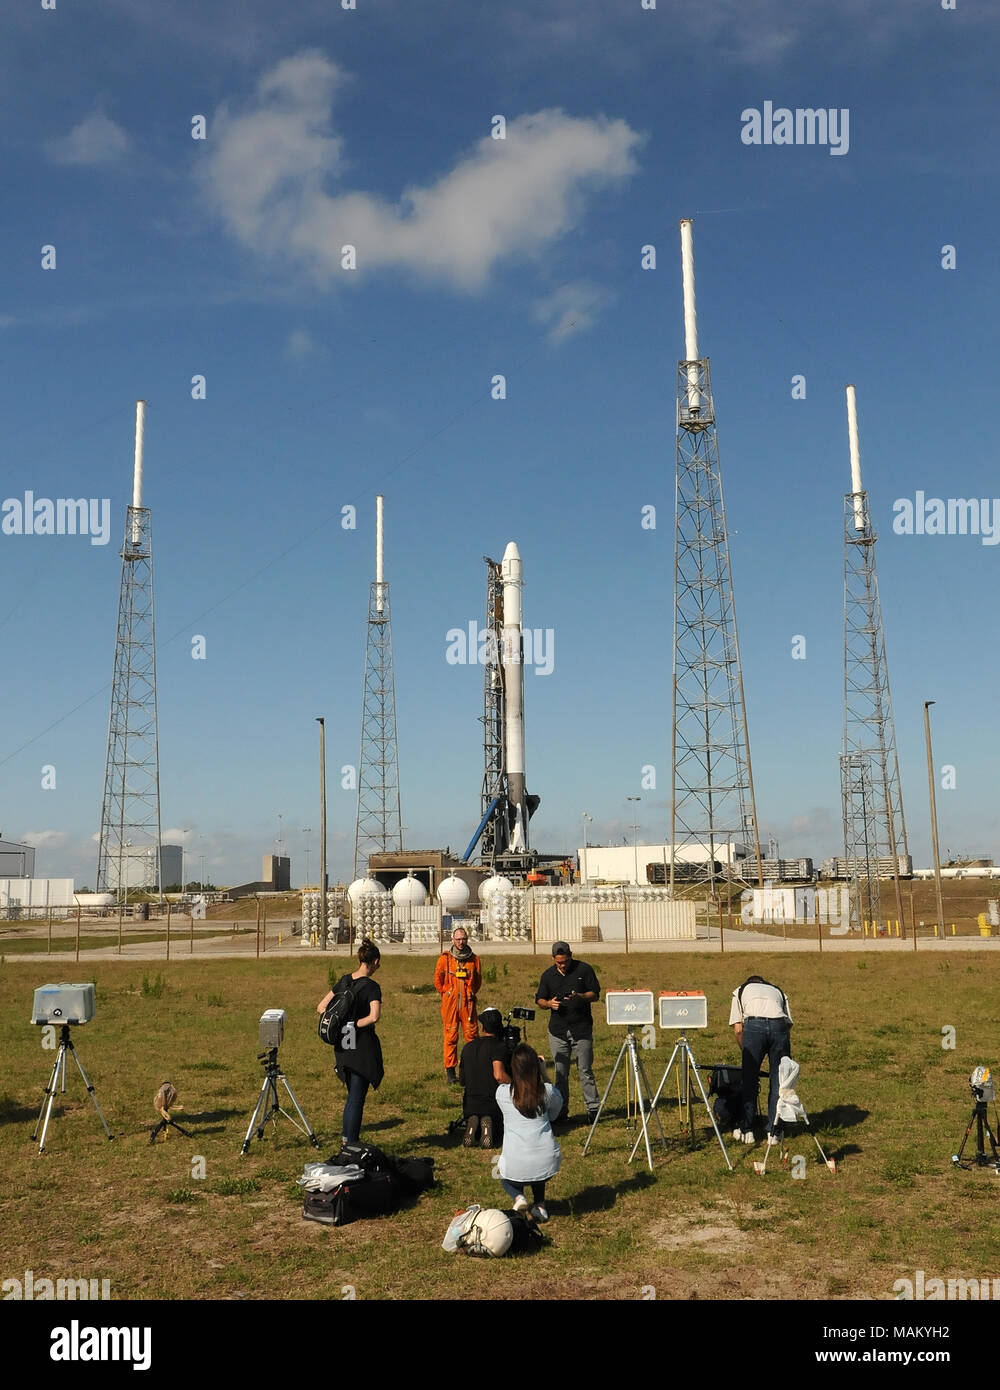 Cape Canaveral, Florida, United States. April 2, 2018 - Members of the media photograph a SpaceX Falcon 9 rocket as it stands ready for launch on April 2, 2018 at launch complex 40 at Cape Canaveral Air Force Station in Florida. The rocket is carrying a Dragon spacecraft containing 5,800 pounds of supplies for the International Space Station (ISS). This is the 14th ISS resupply mission by SpaceX for NASA. (Paul Hennessy/Alamy) Credit: Paul Hennessy/Alamy Live News - Stock Image